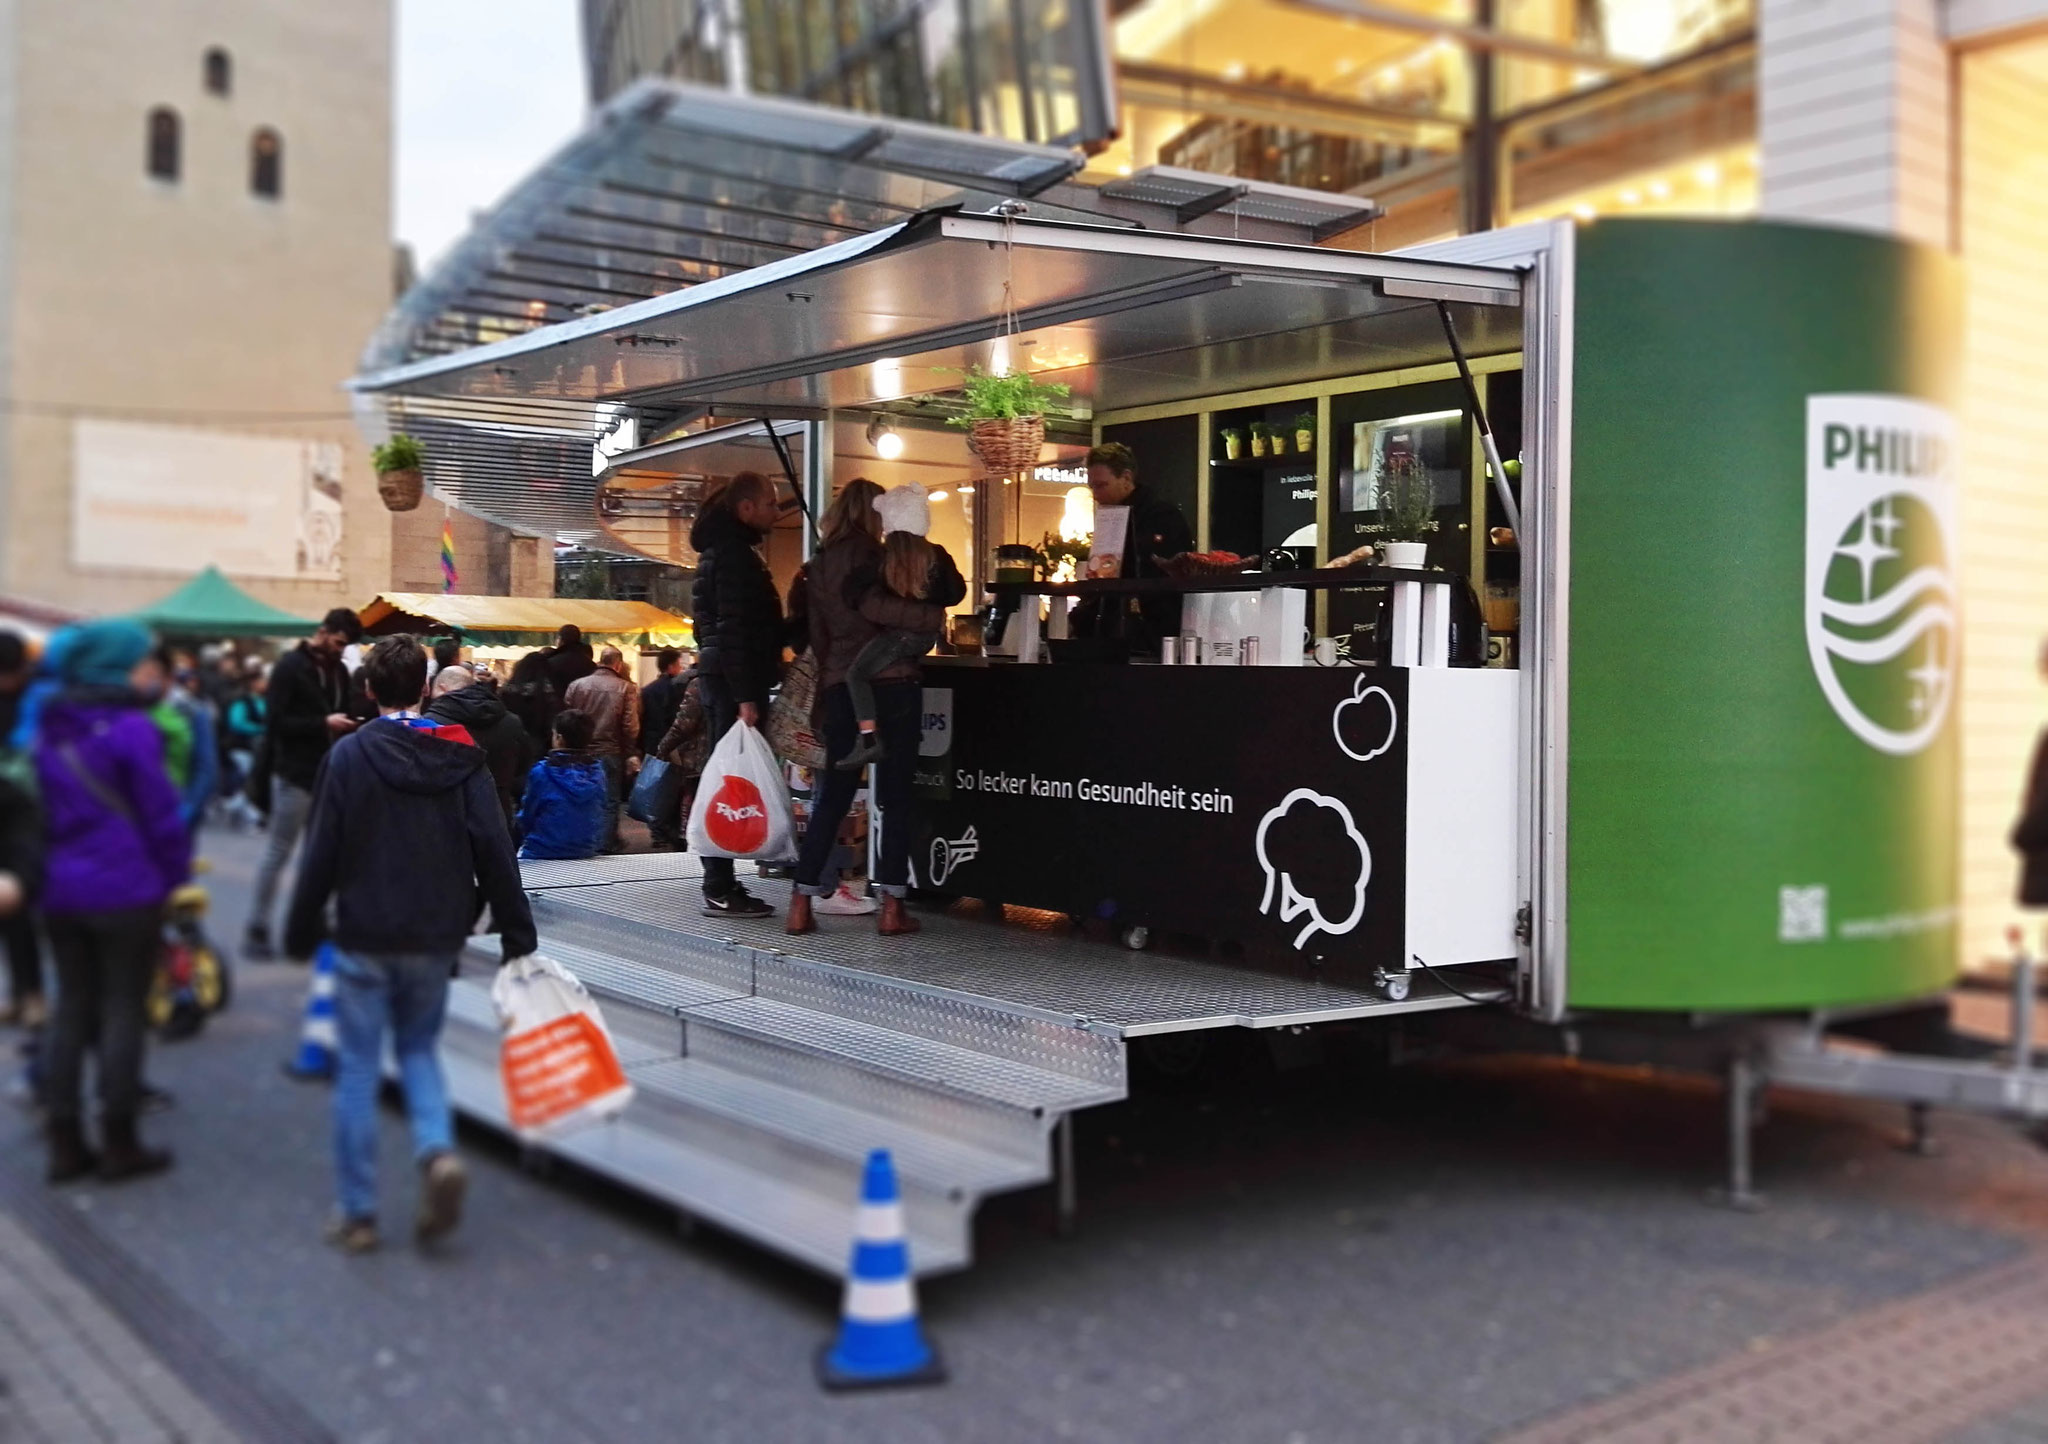 Philips Foodtruck - Roadshow, Food Promotion